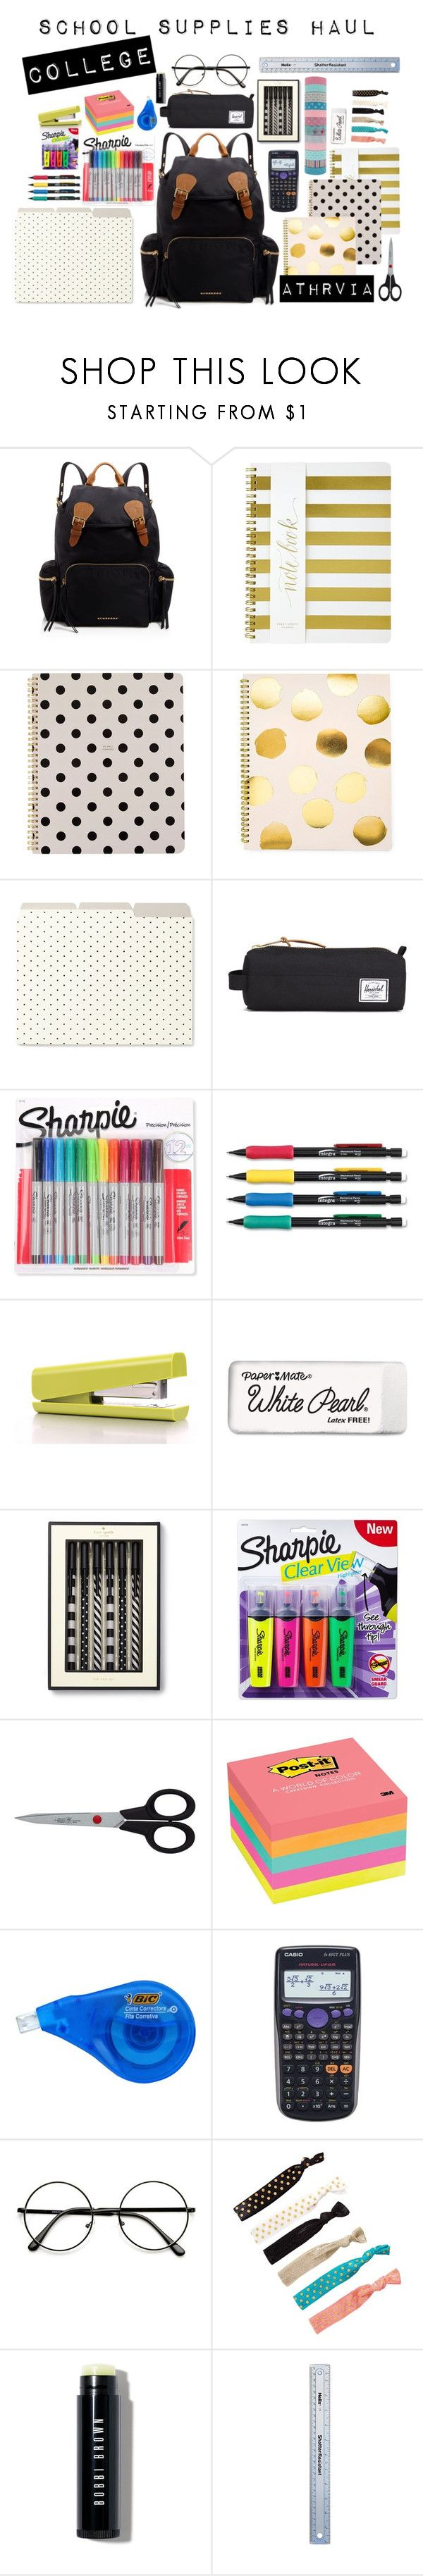 """school supplies haul"" by nerizaarviana on Polyvore featuring Burberry, Sugar Paper, Kate Spade, Herschel Supply Co., Parker, aNYthing, Paper Mate, Sharpie, Zwilling J.A. Henckels and Post-It"